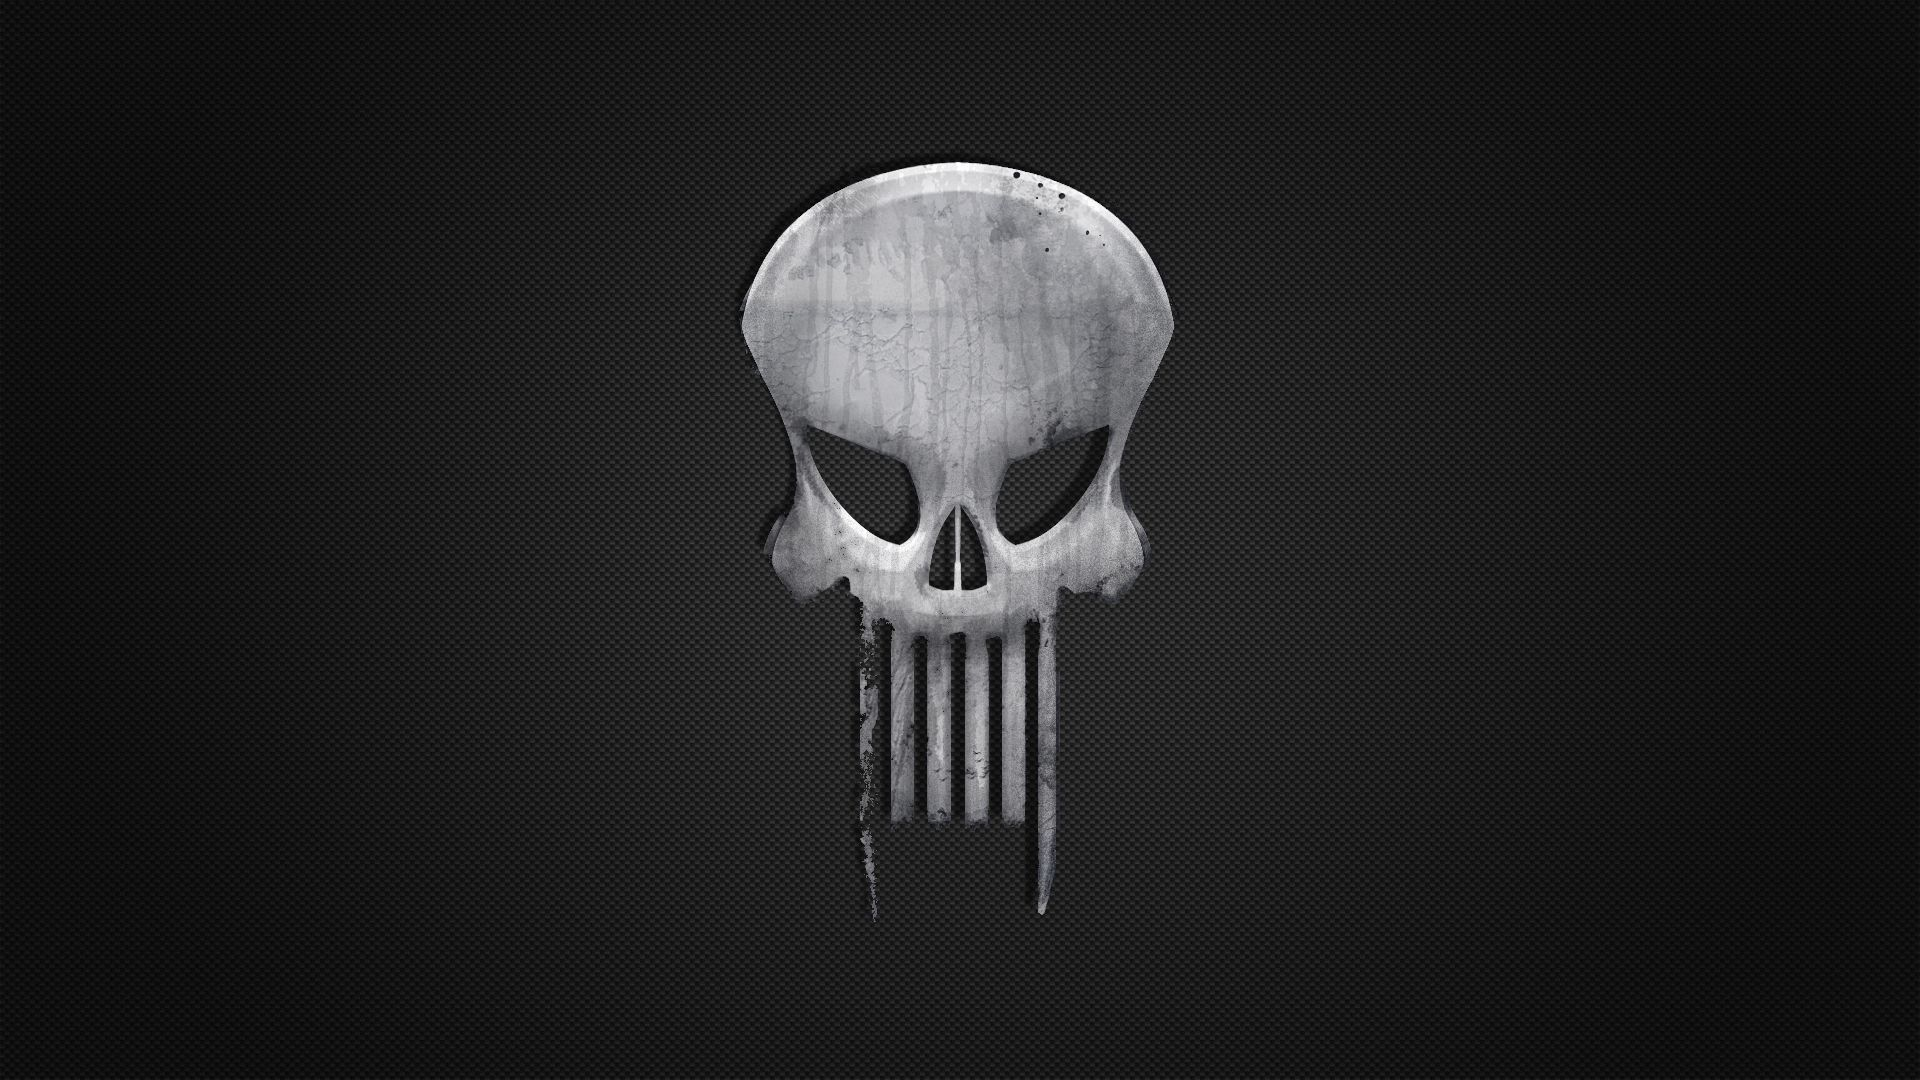 1920x1080 Punisher Skull Wallpaper - Wallpapers Browse